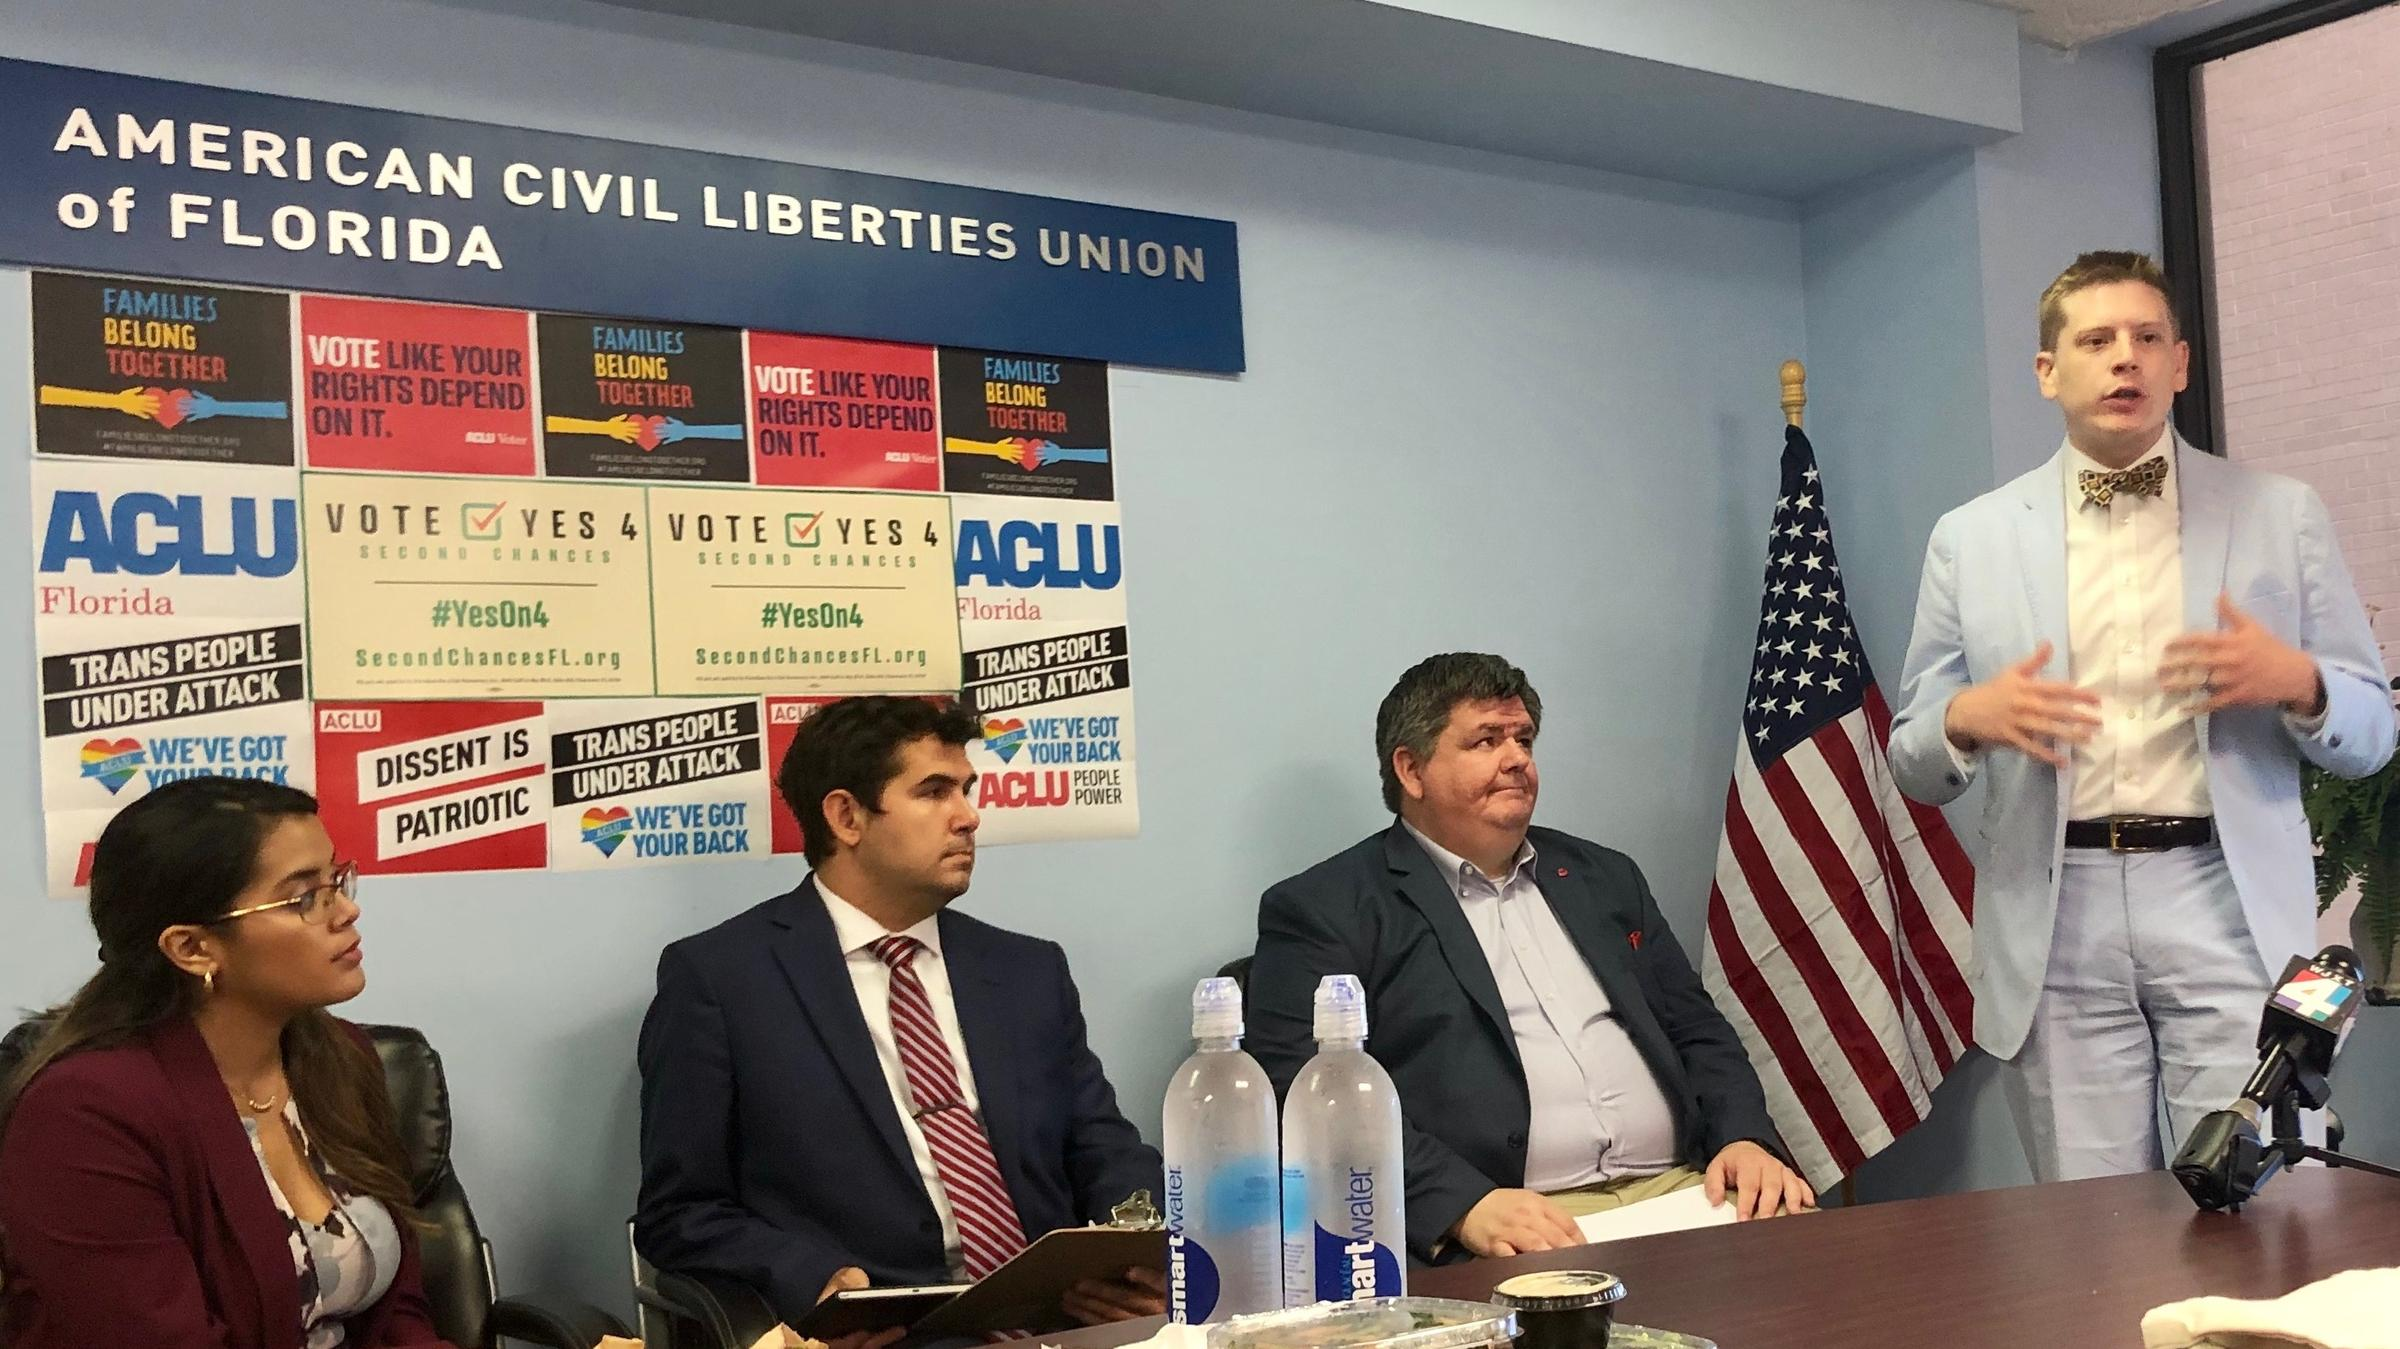 ACLU Says 2019 Marked Florida's 'Worst Legislative Session In 10 Years'